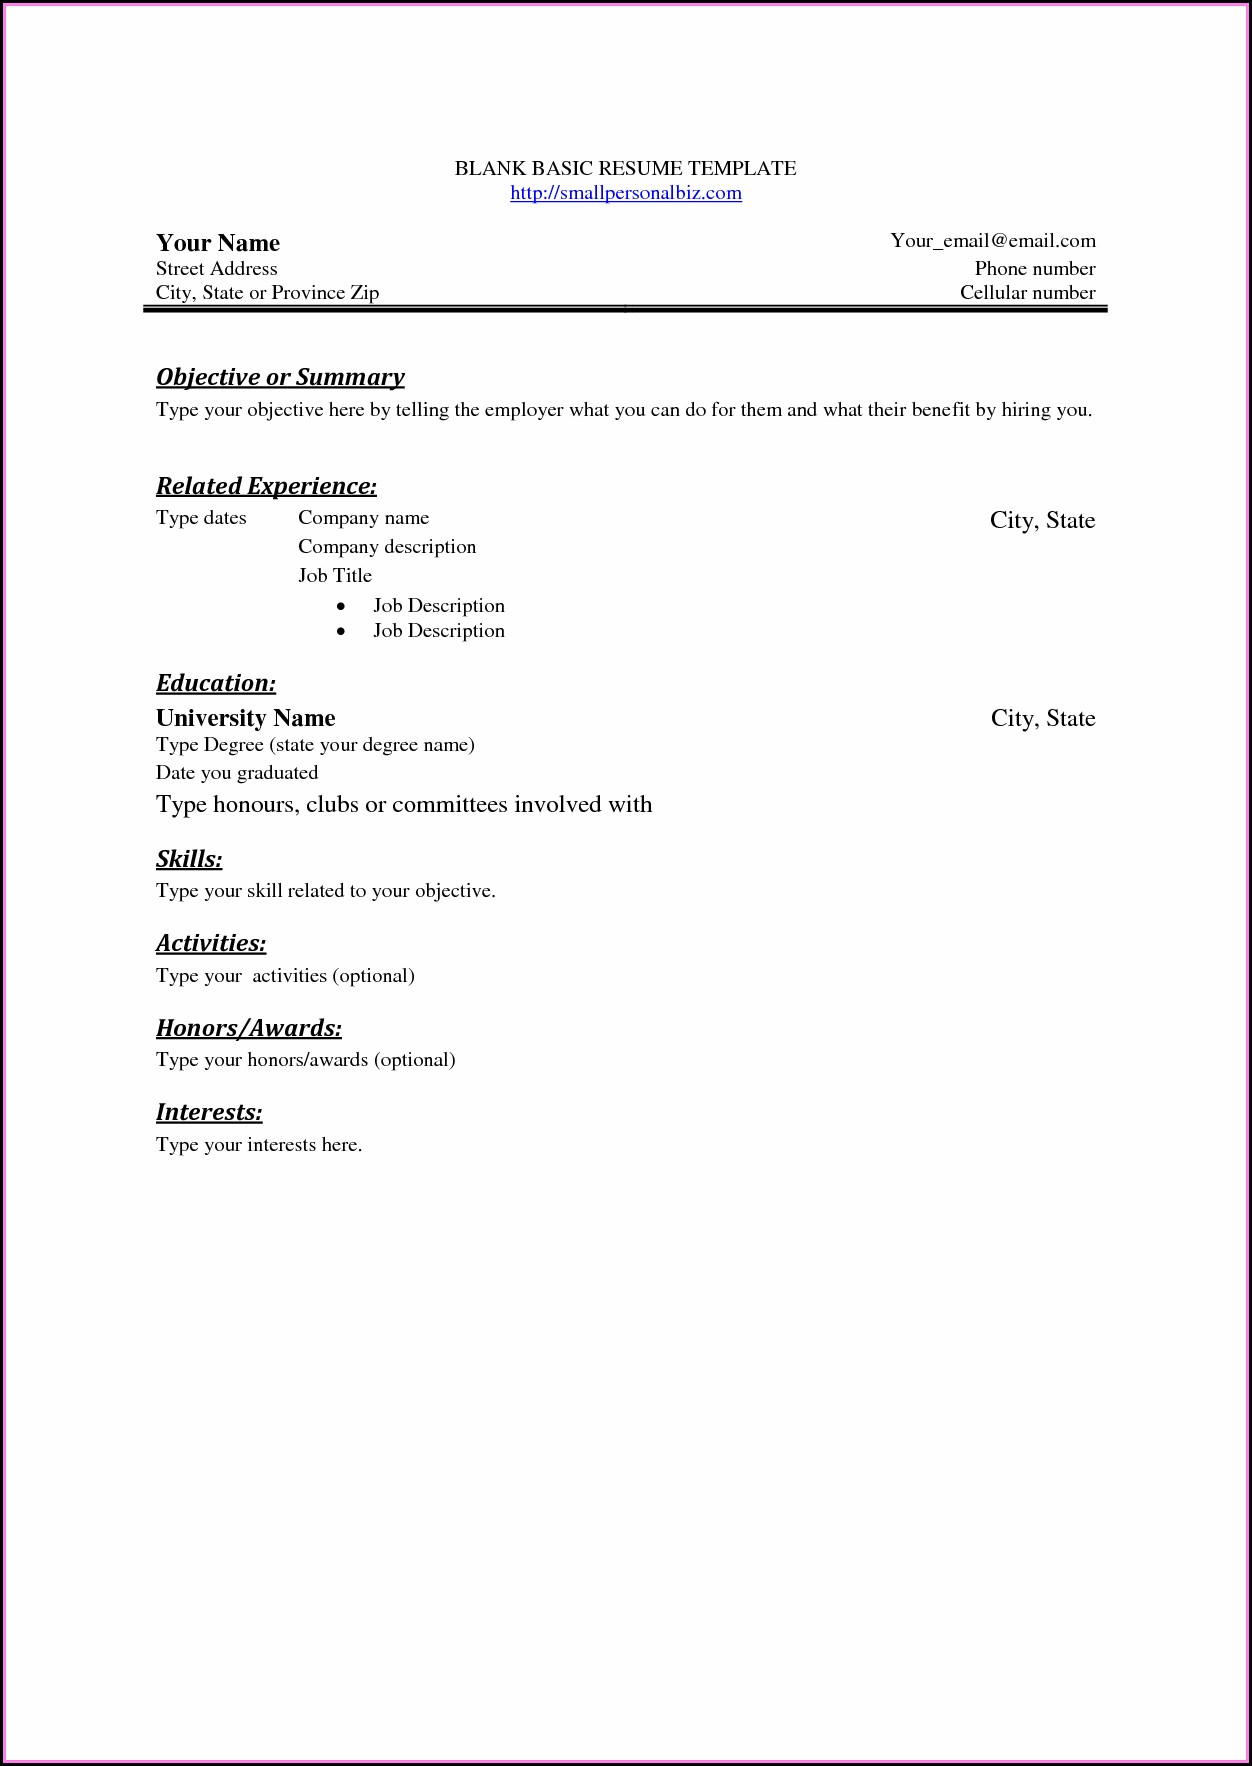 Empty Resume Format For Freshers